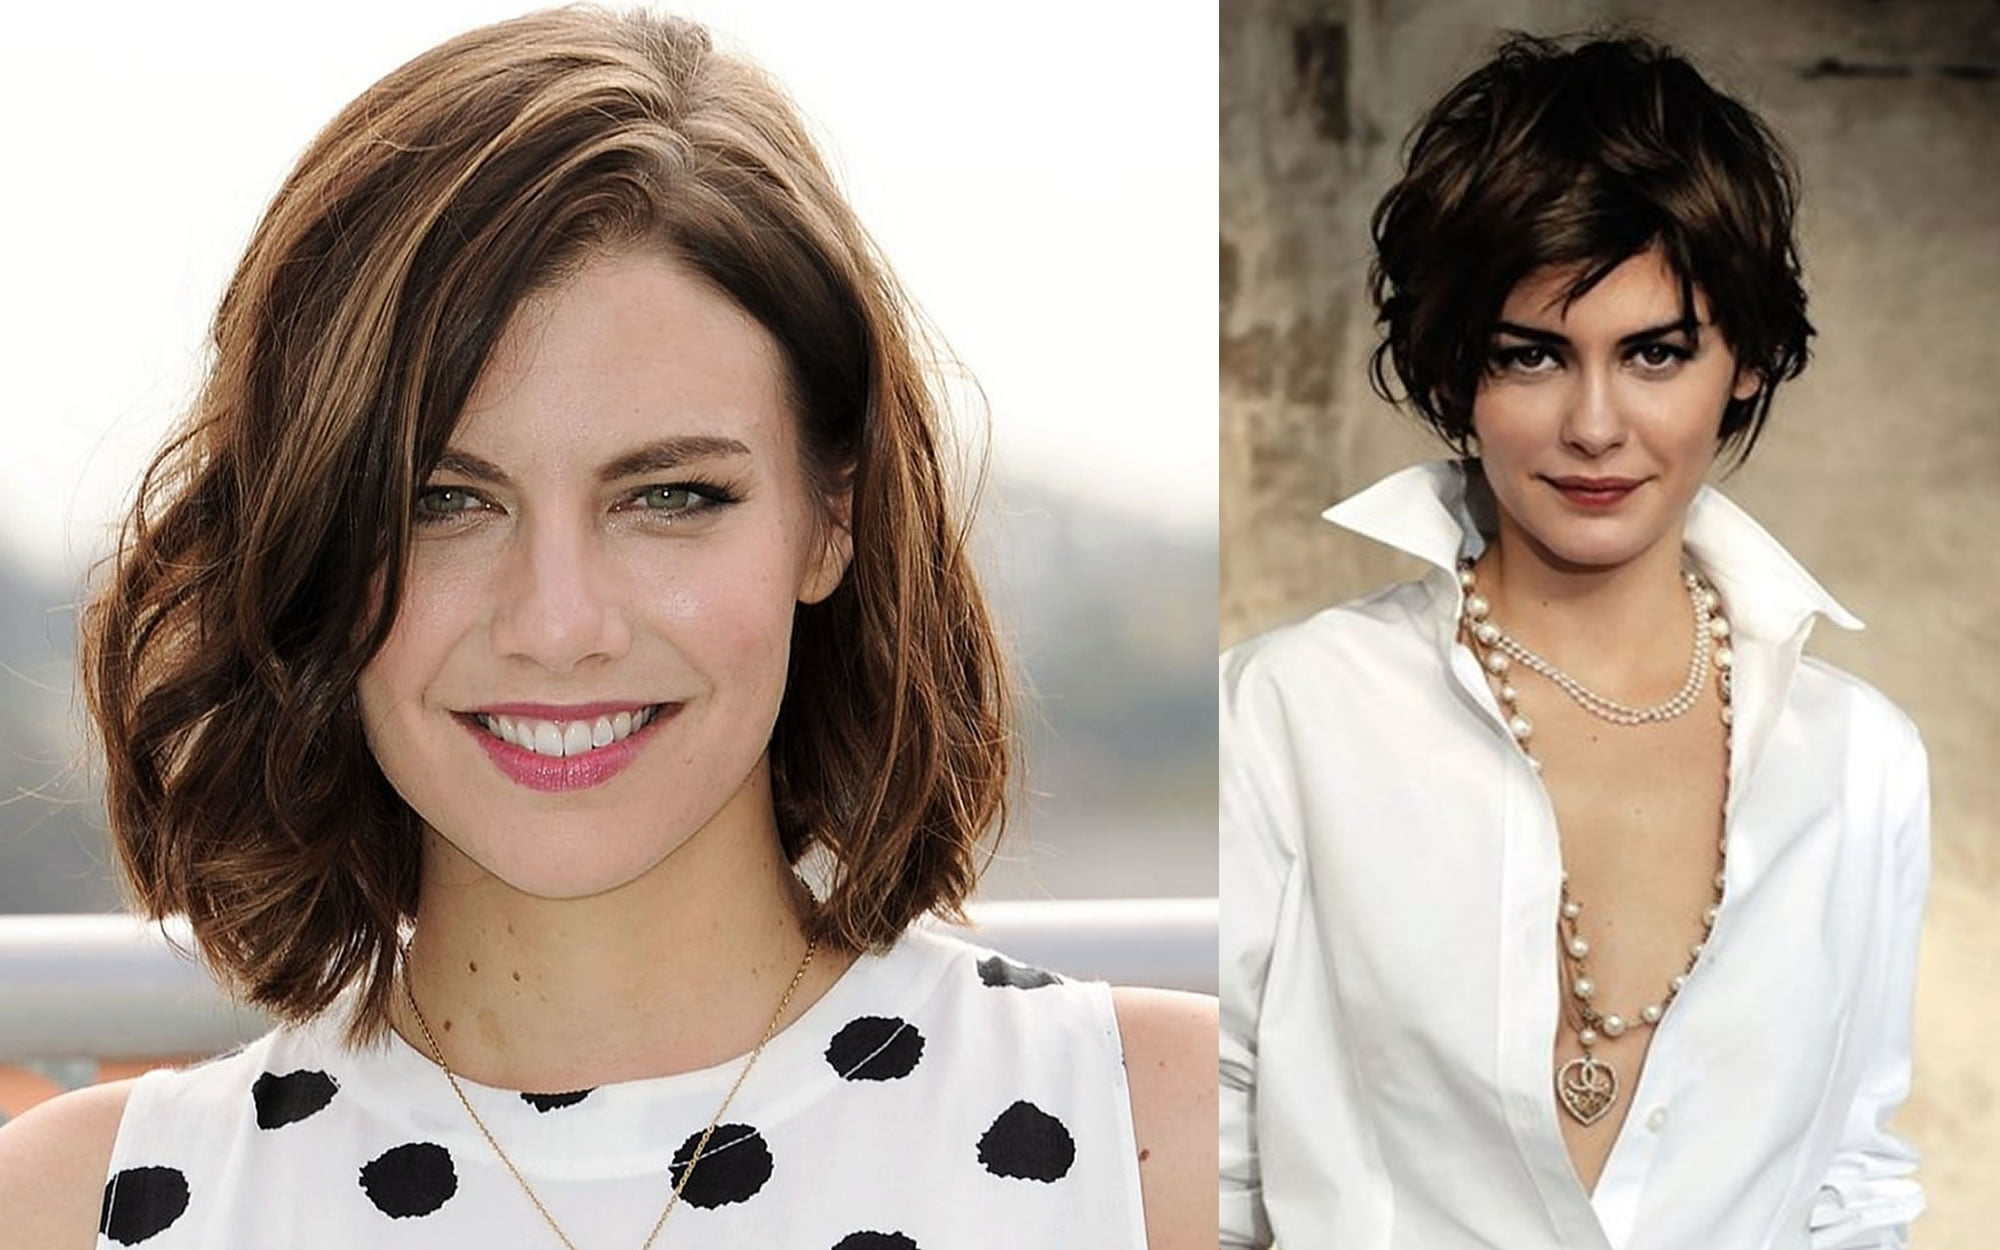 spring-summer 2018 haircuts and hairstyles for women